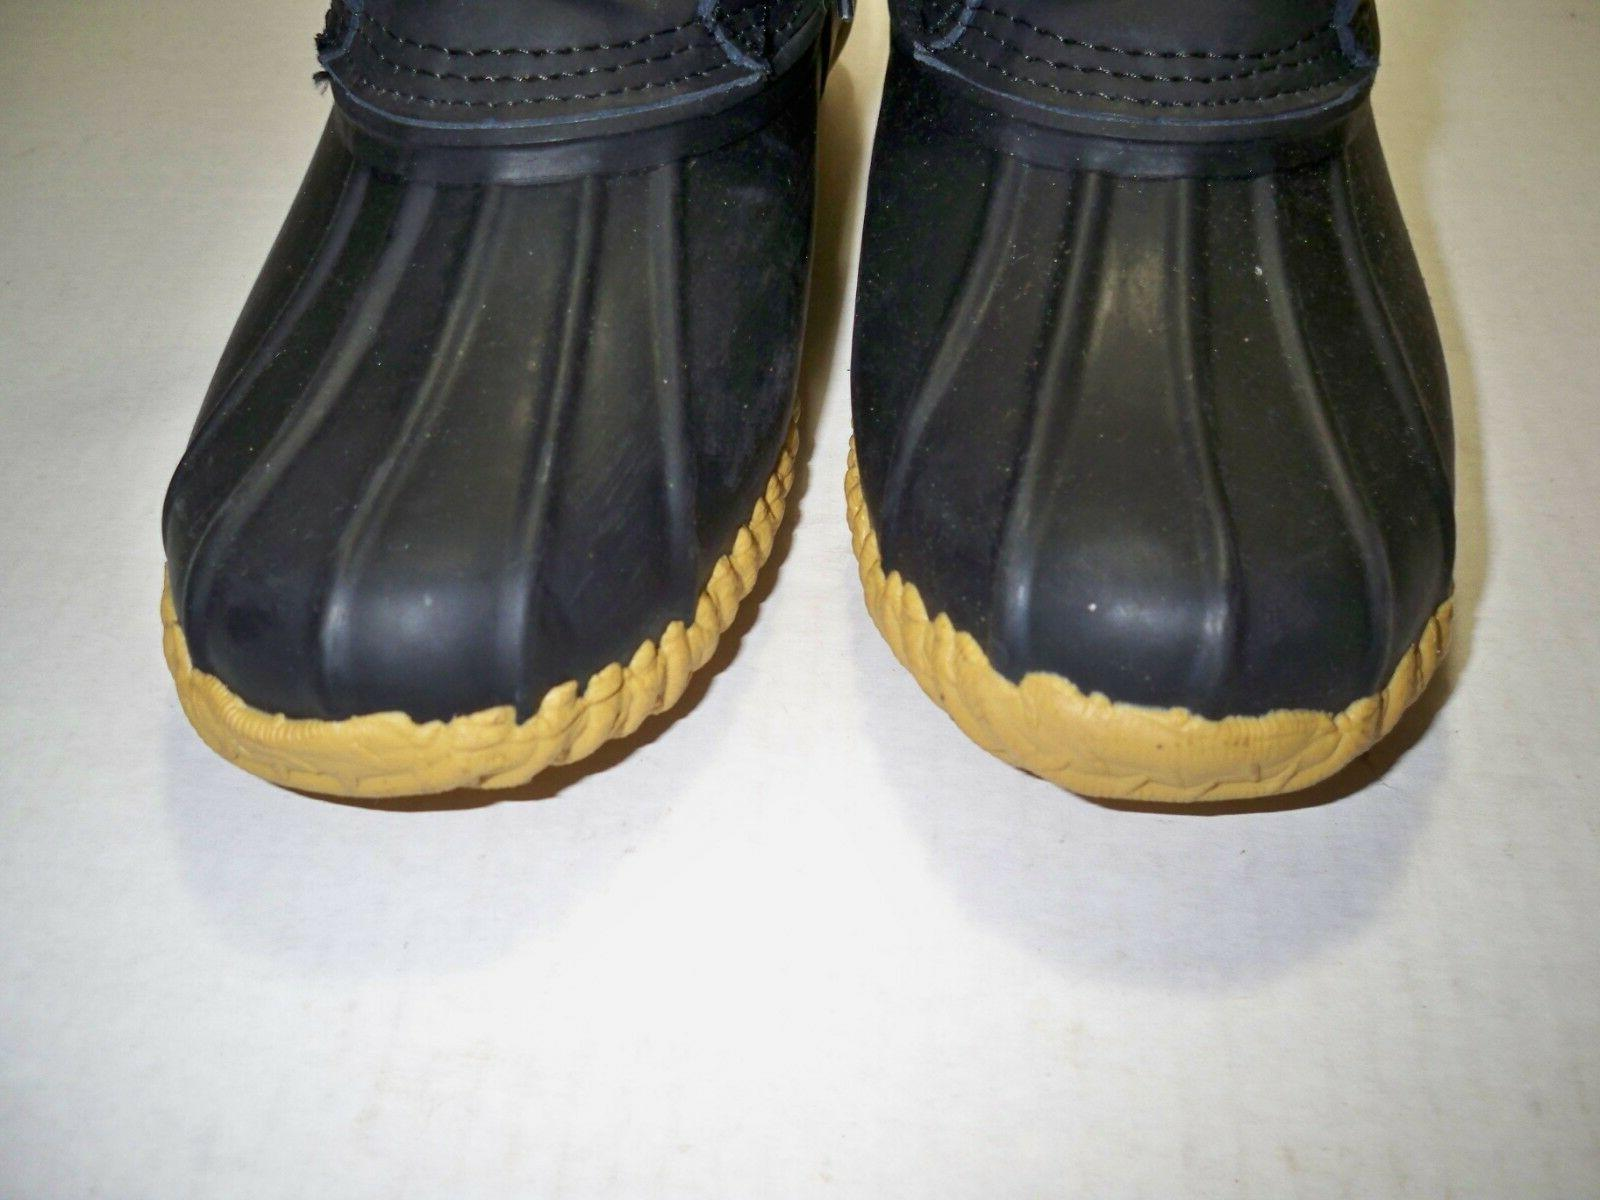 American Eagle Outfitters Duck Boots 8 M NoBox